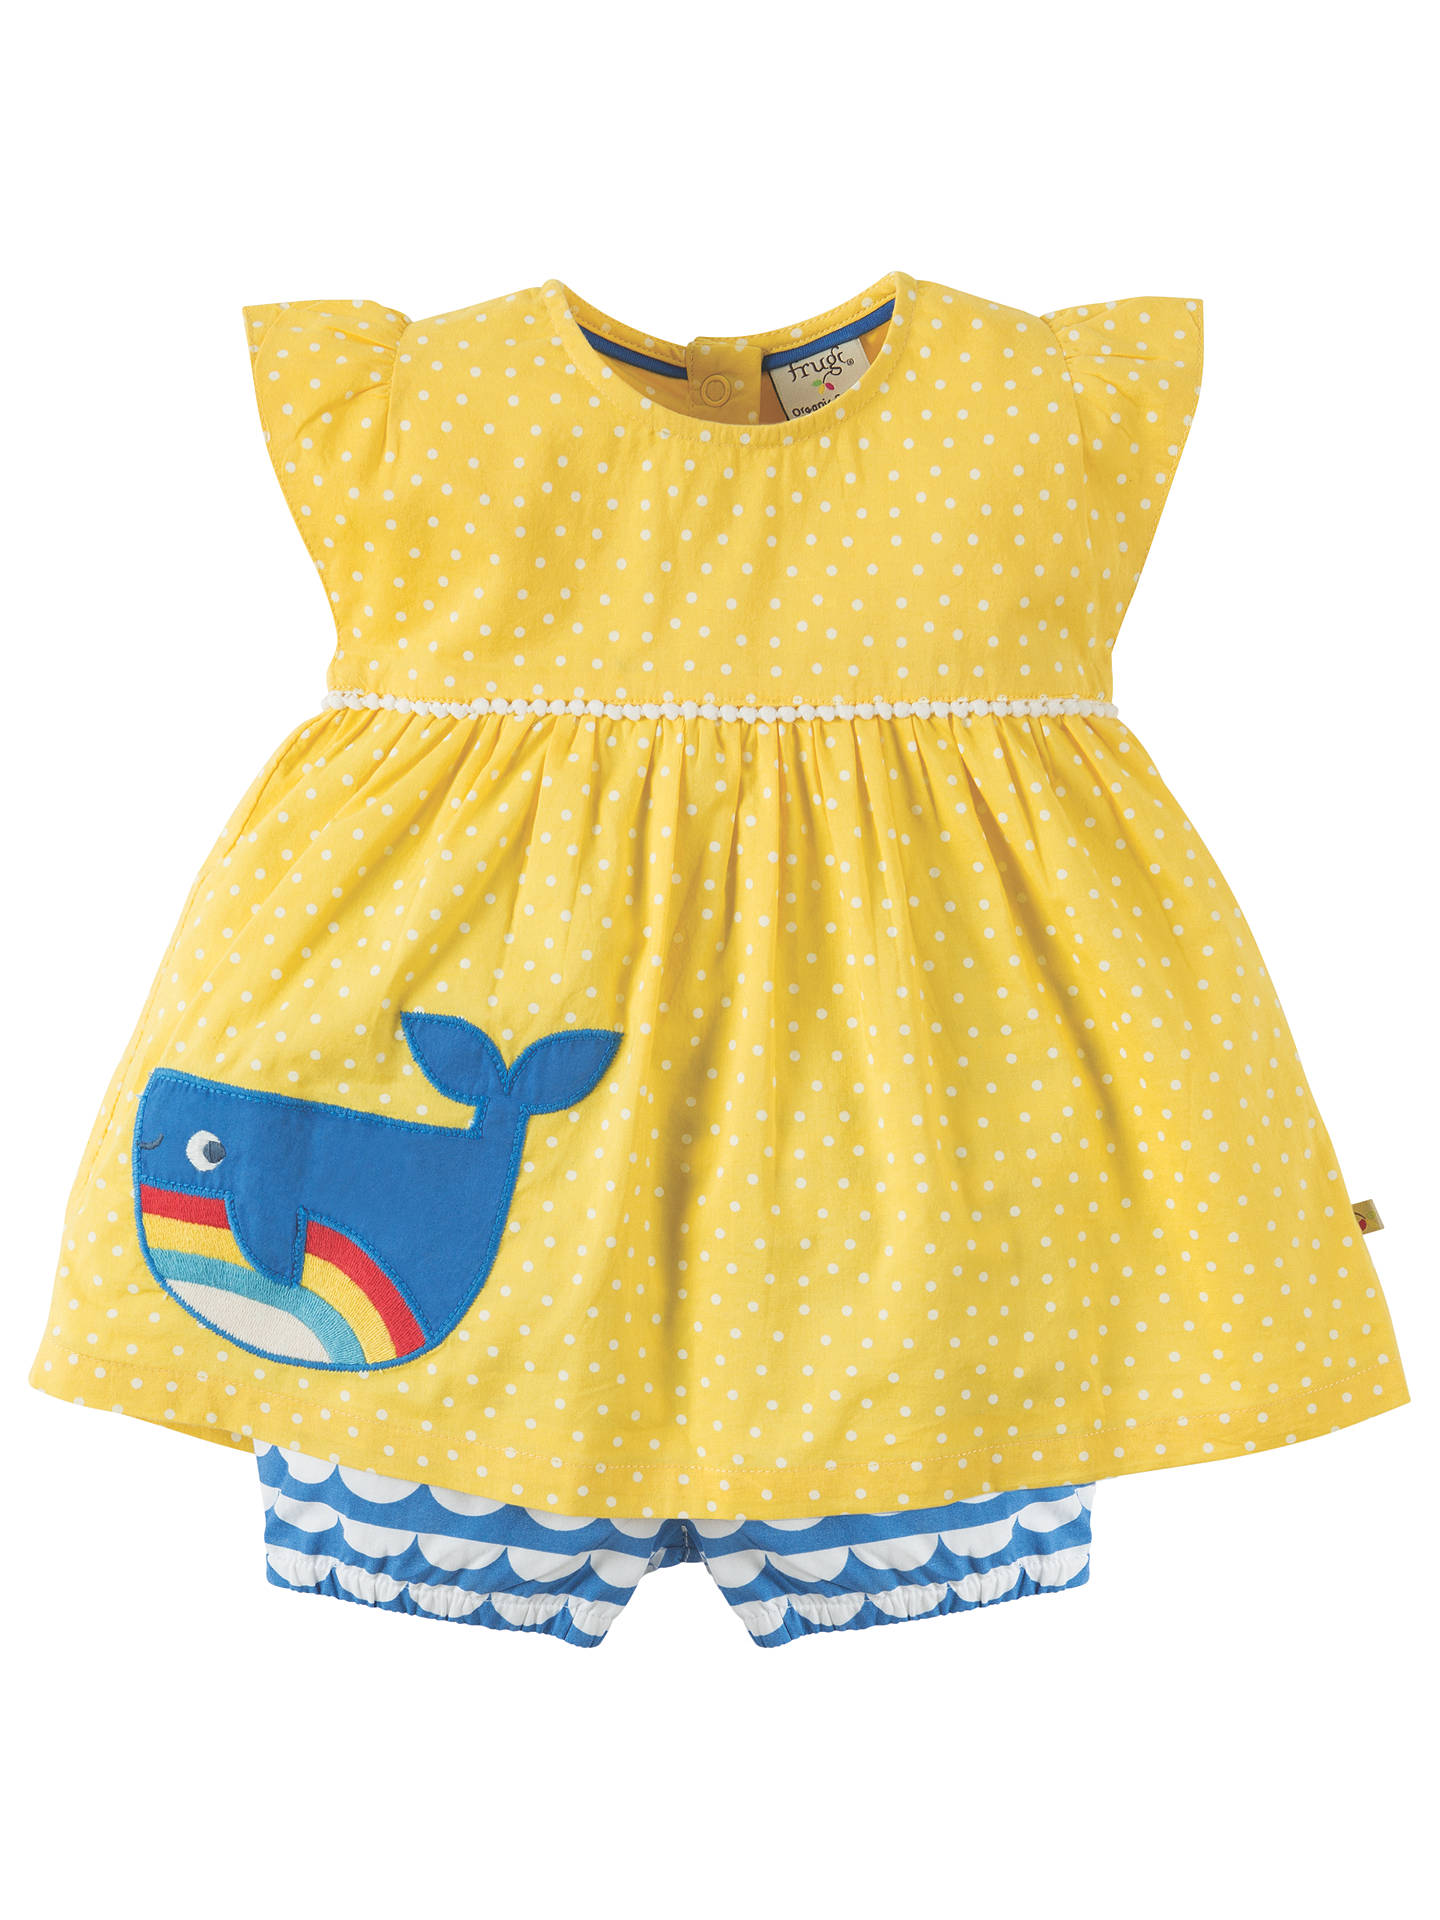 614c3ea99d5ae Buy Frugi Organic Baby Waterfall Whale Top and Shorts Set, Multi, 0-3 ...